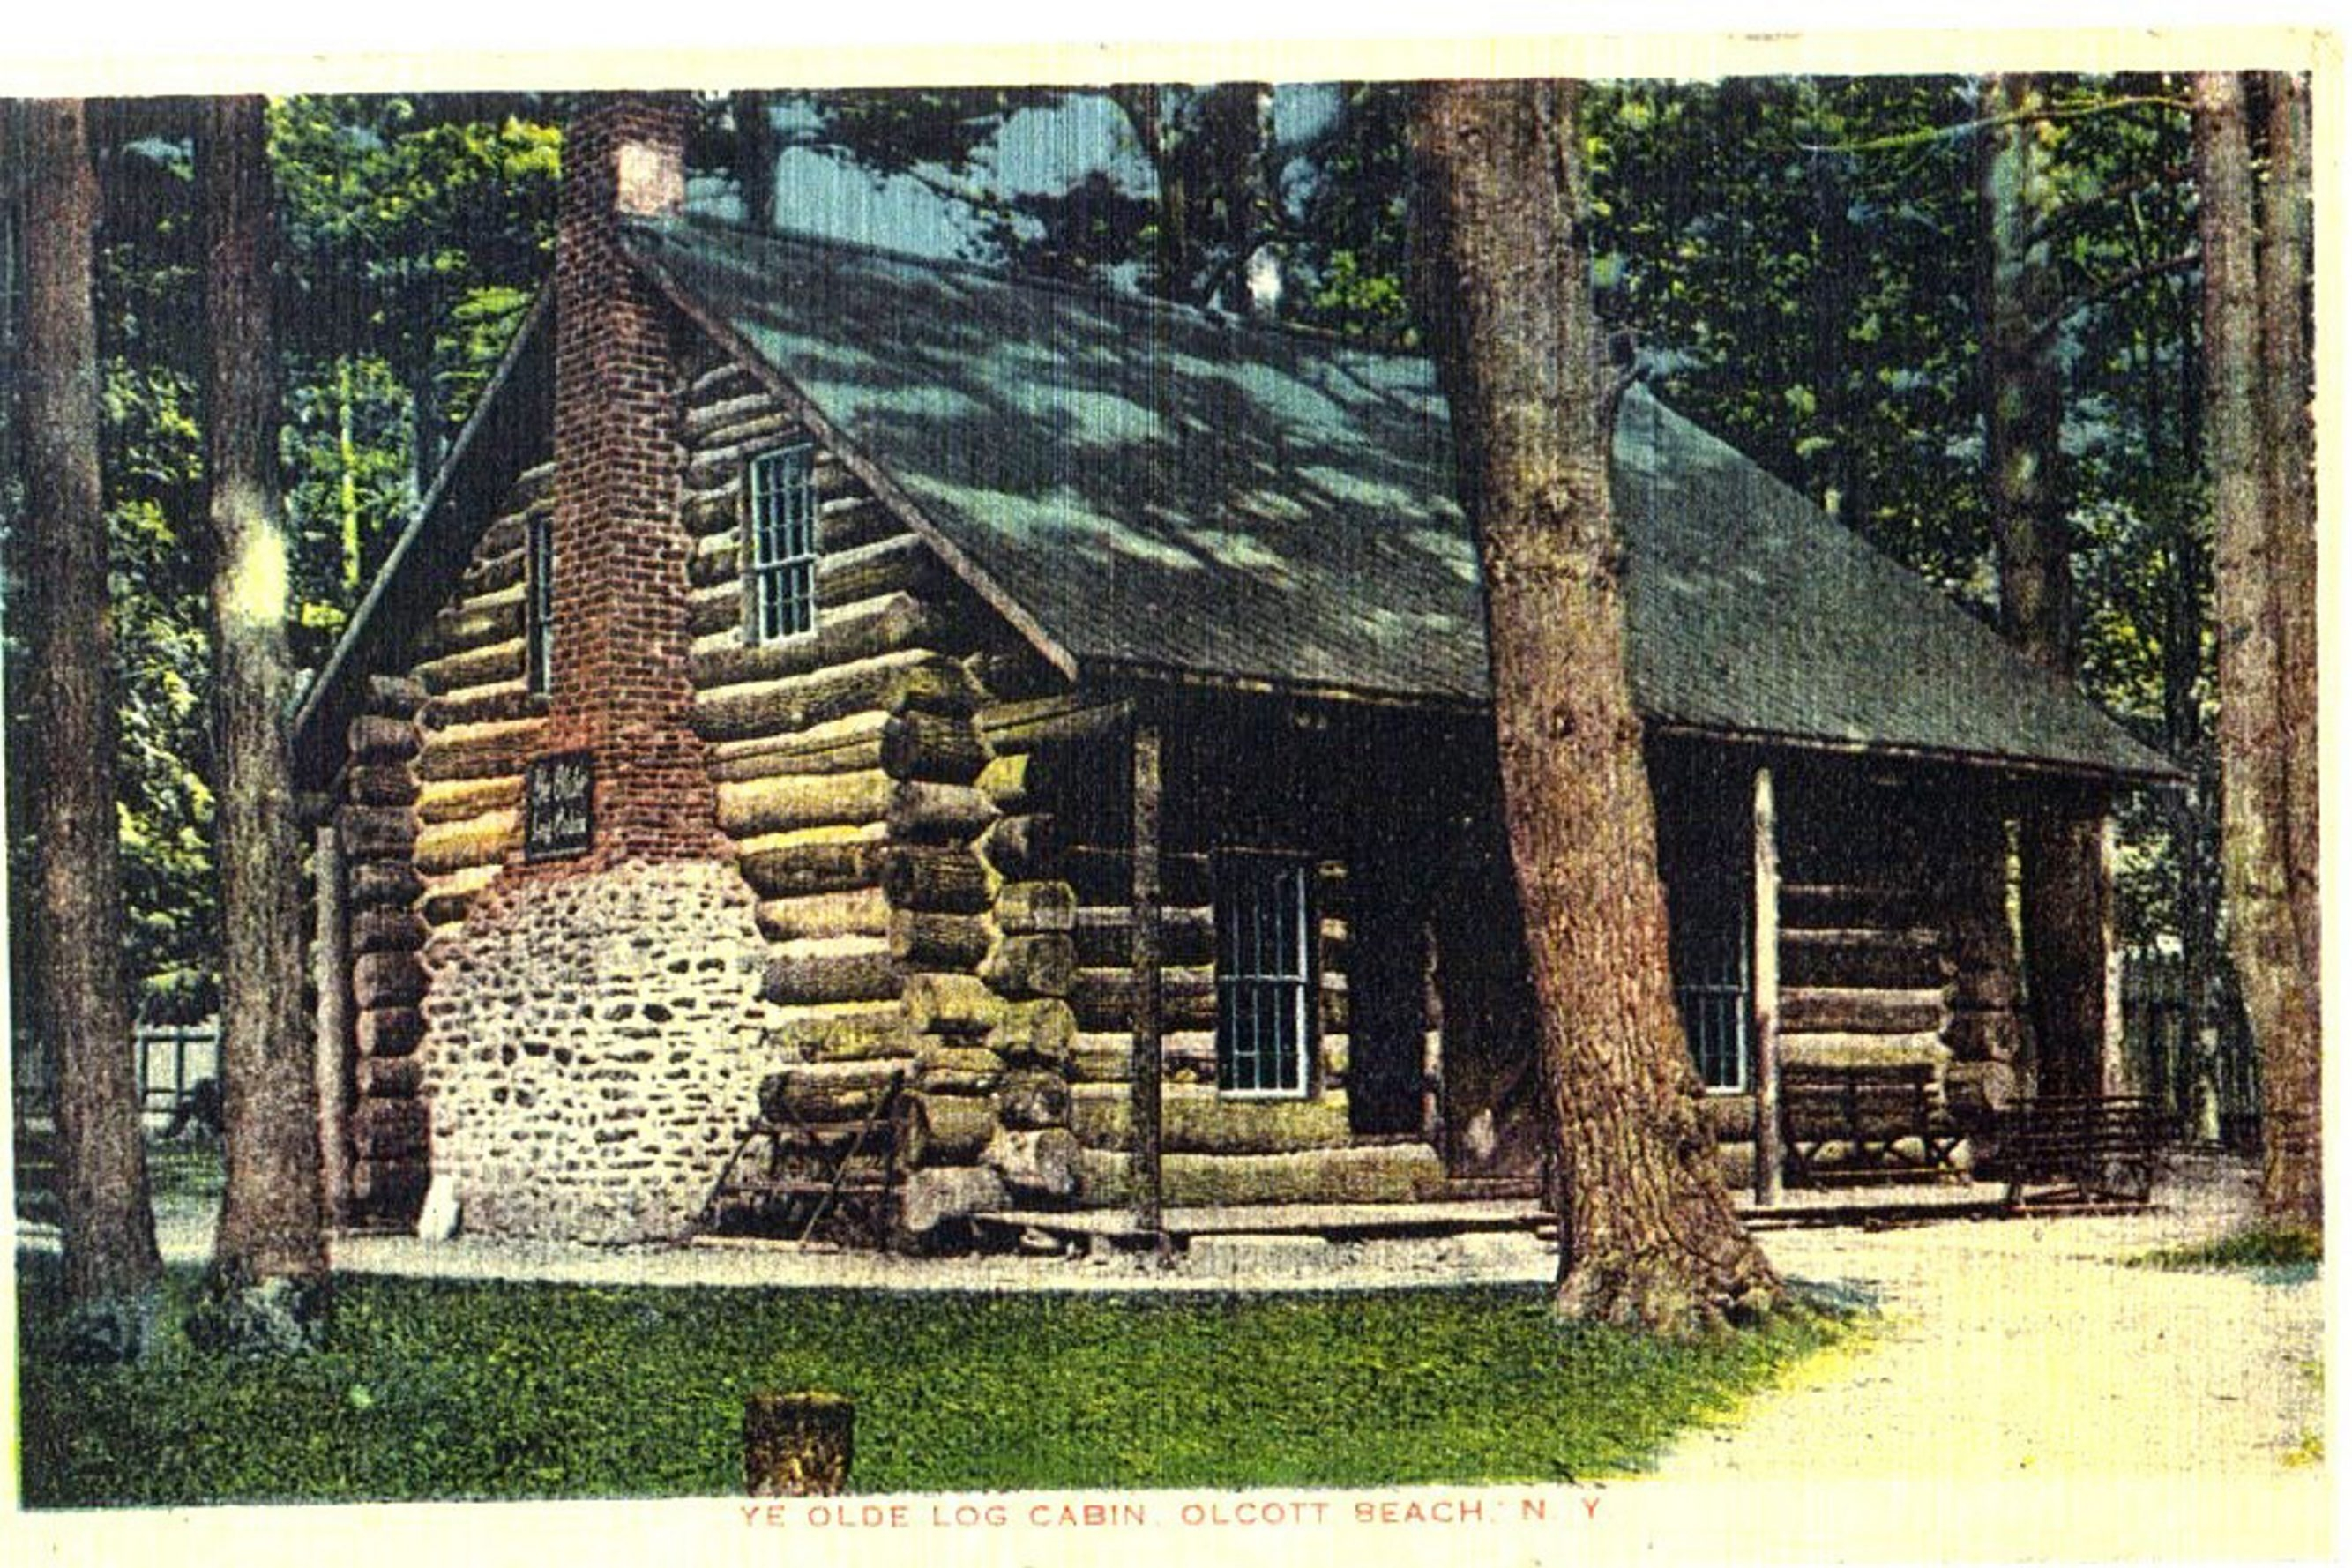 The original log cabin that once stood in Krull Park was built by the Niagara County Pioneers Association in 1887-88.